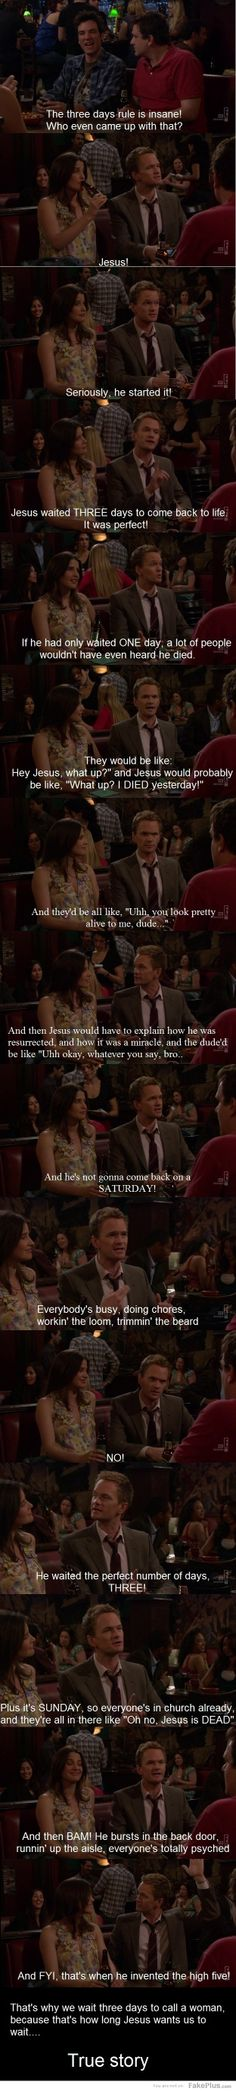 I have pinned this before. I will pin it again front contender for best HIMYM joke!